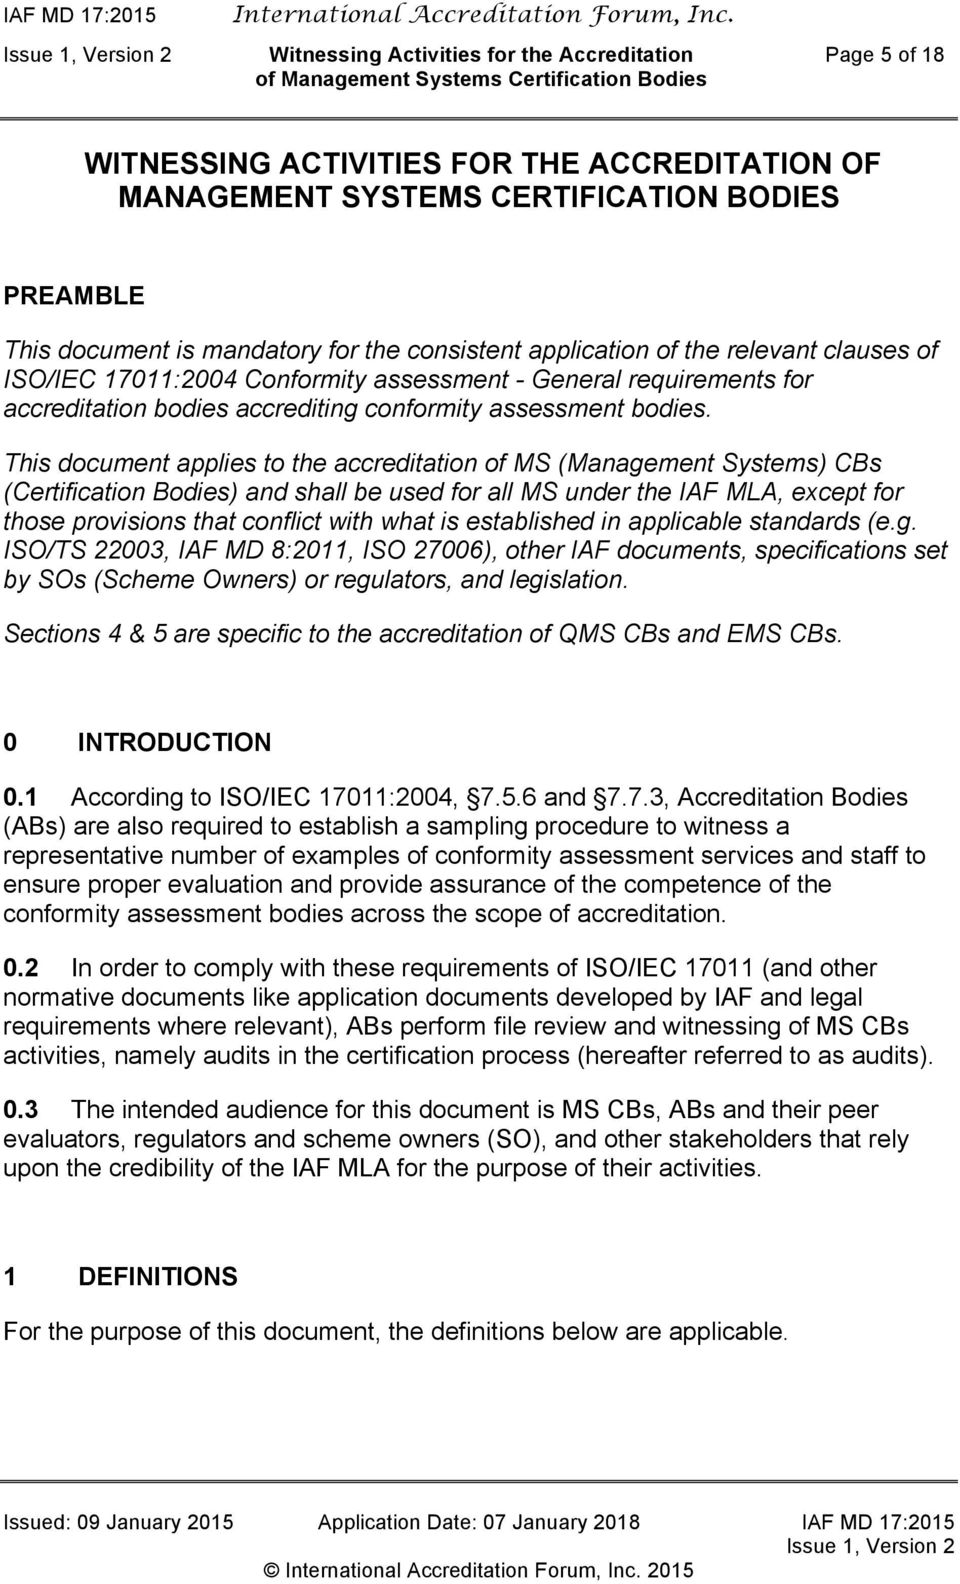 This document applies to the accreditation of MS (Management Systems) CBs (Certification Bodies) and shall be used for all MS under the IAF MLA, except for those provisions that conflict with what is